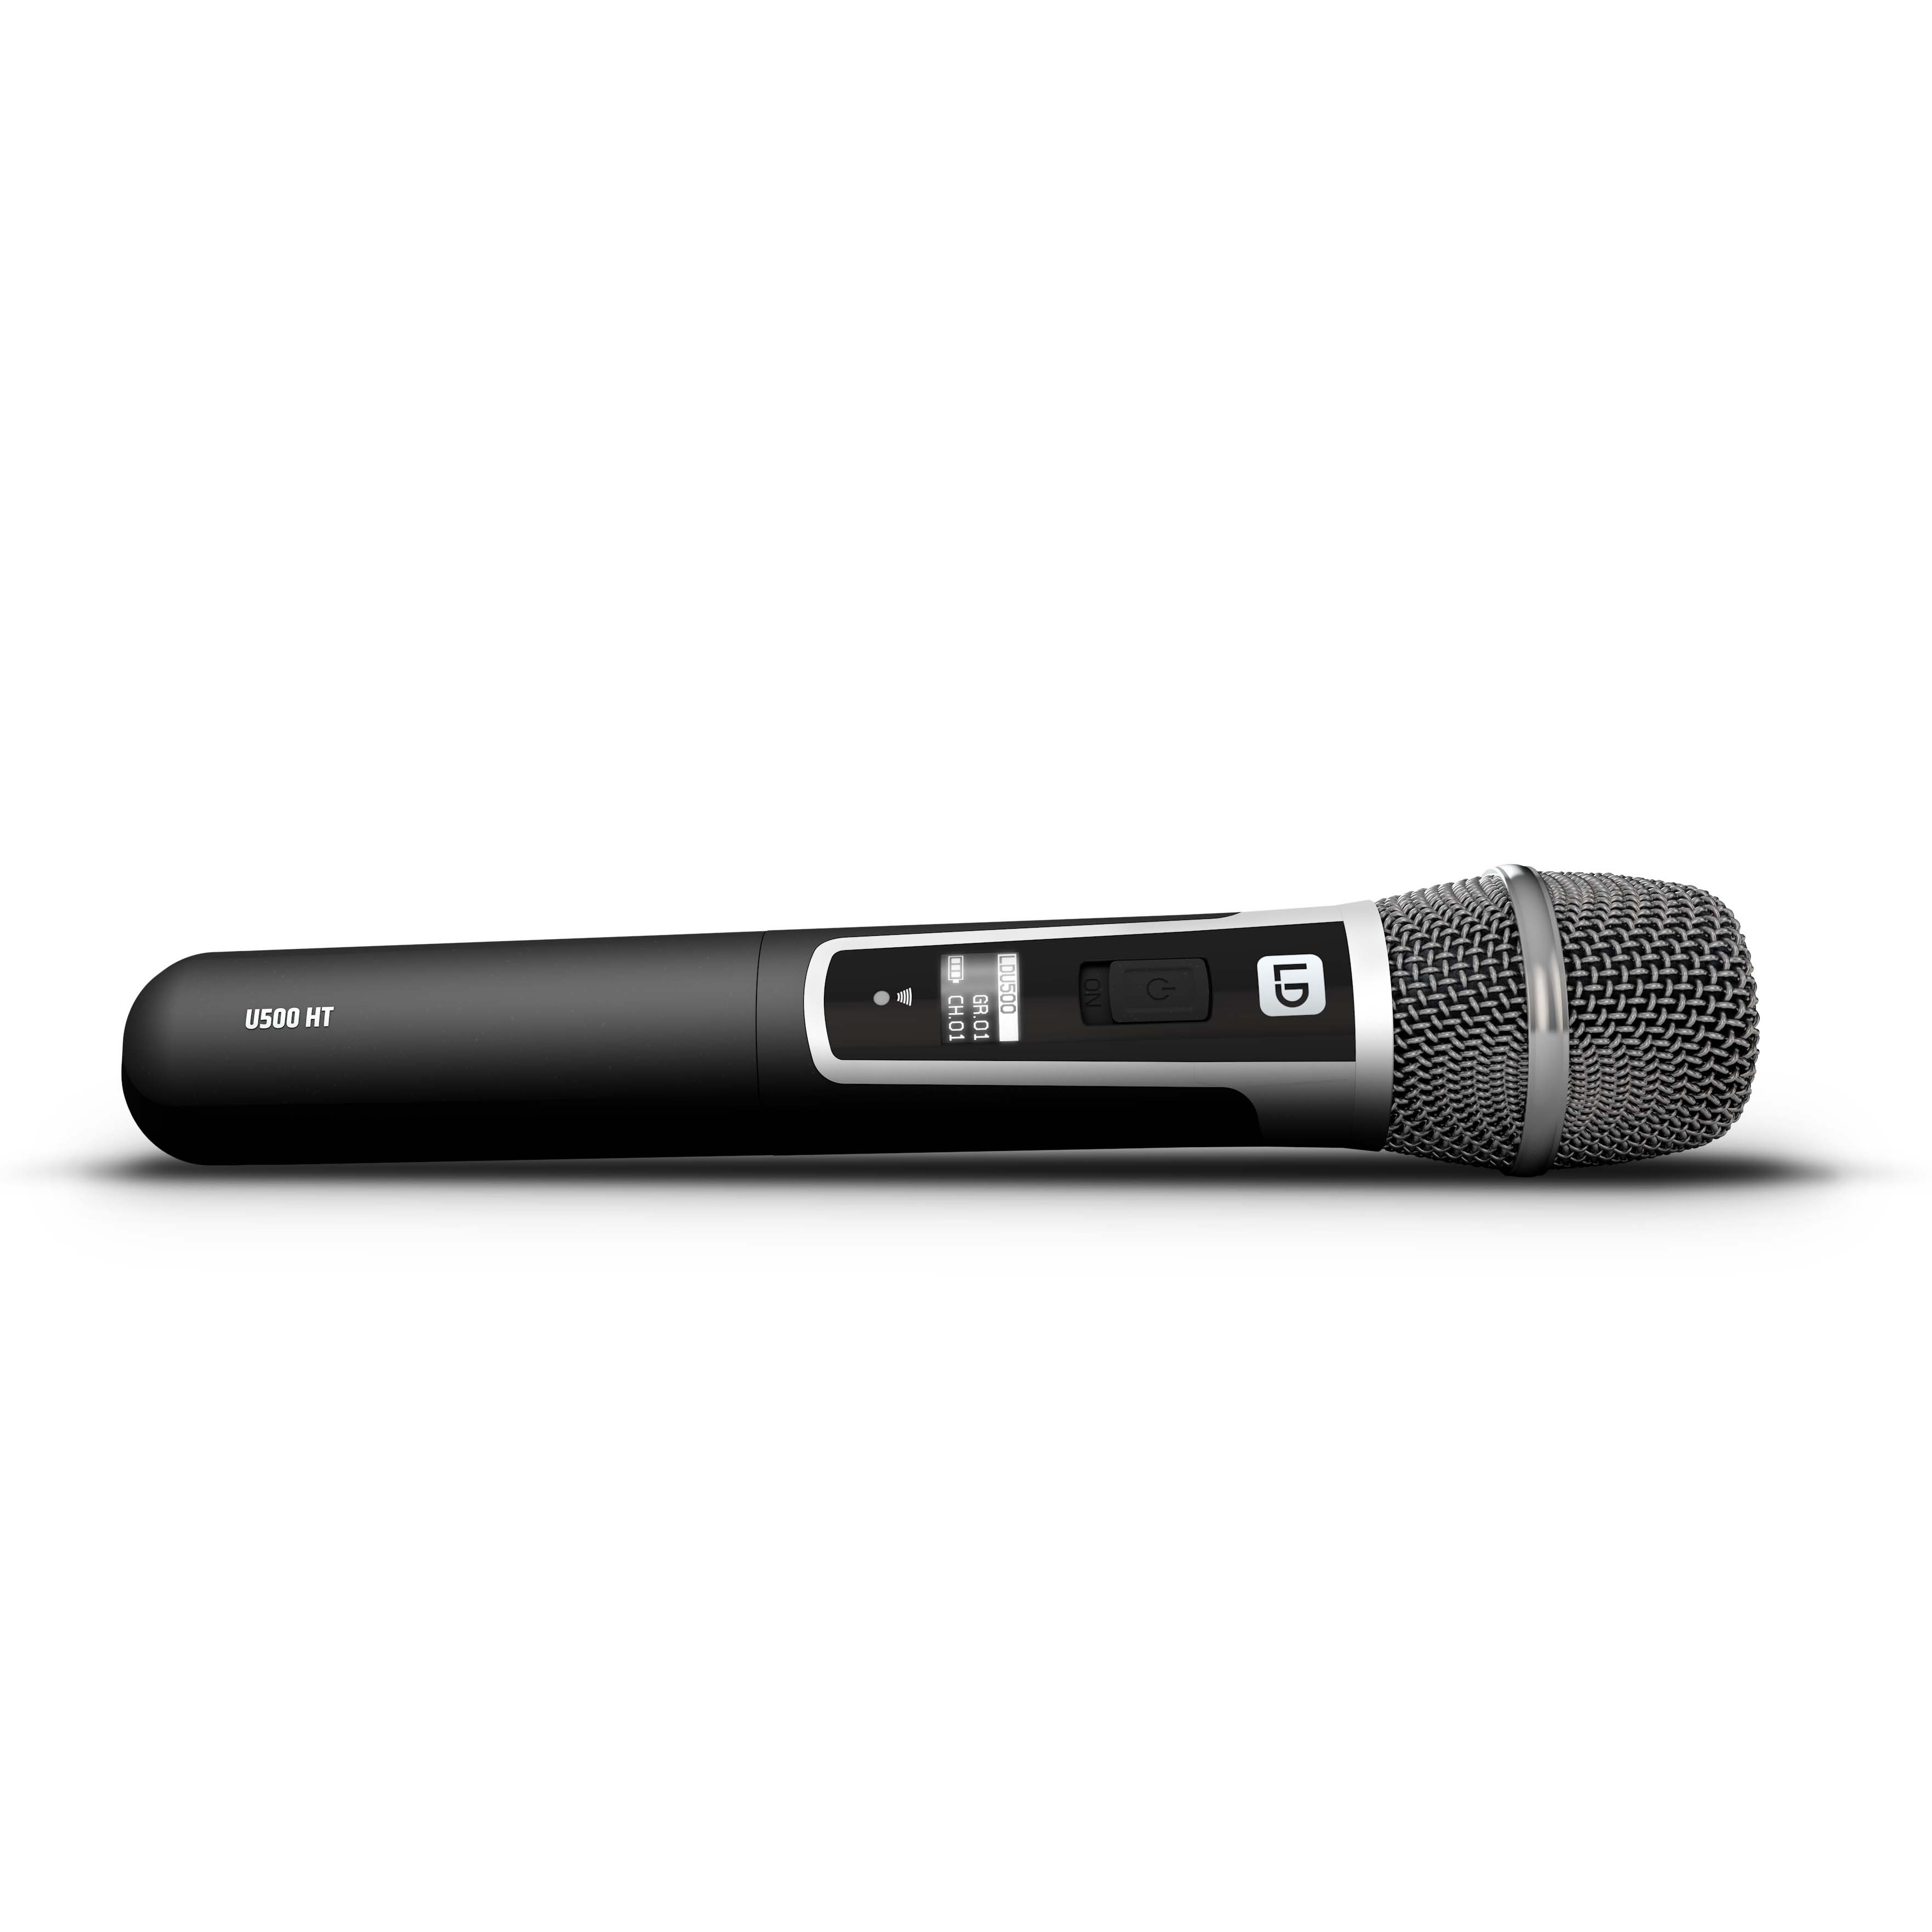 U508 HHC 2 Wireless Microphone System with 2 x Condenser Handheld Microphone